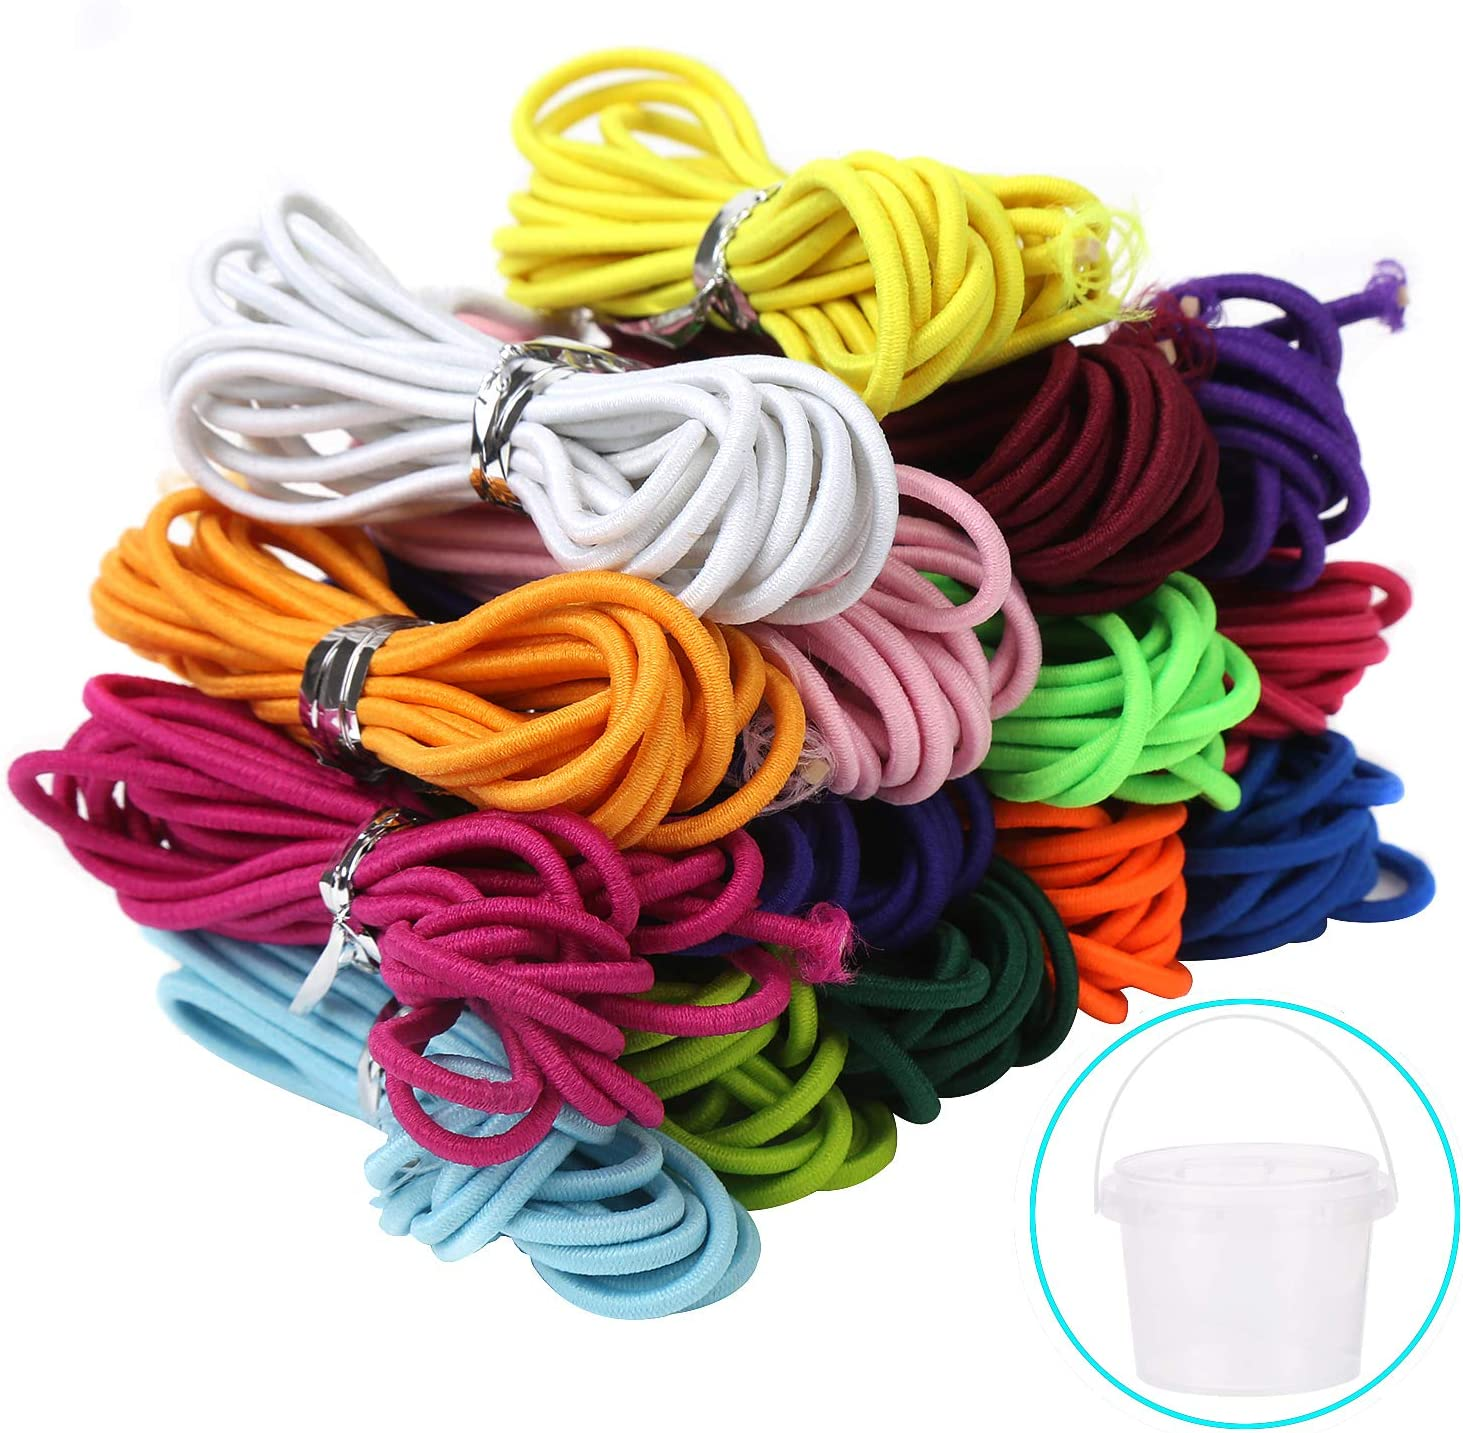 LOKIPA Elastic Cord Elastic Thread Beading String Band Cord Diameter 2mm for DIY Crafts Jewelry Making Assorted 15 Colors